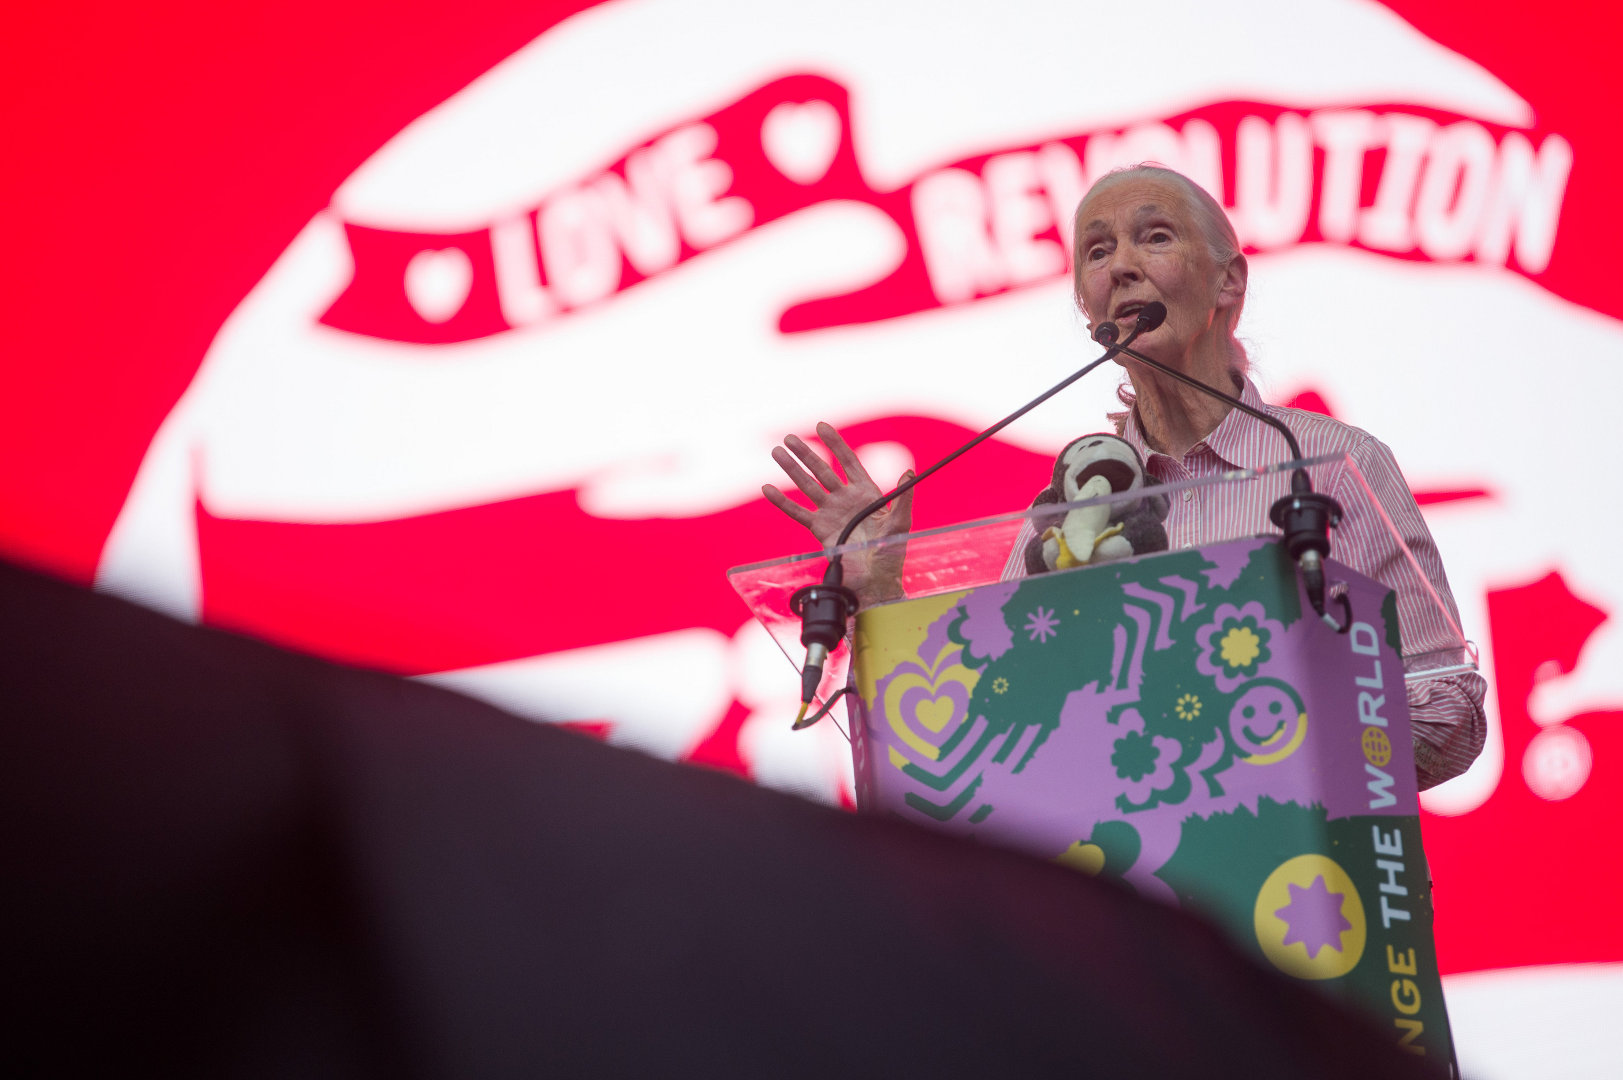 Video: Jane Goodall, UN Peace Messenger, Interviewed By British Ambassador Lindsay At Sziget